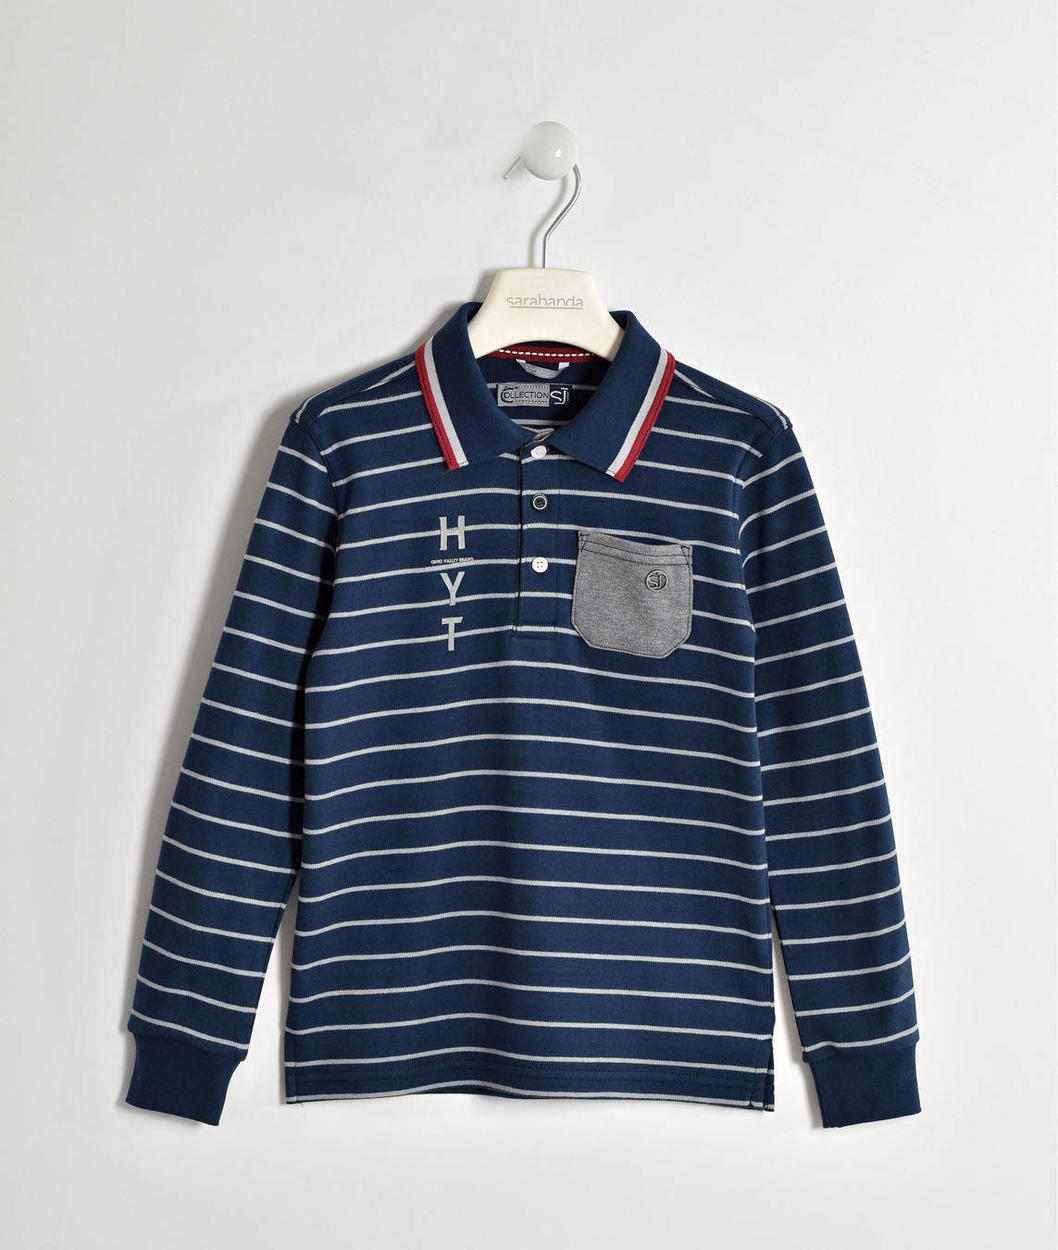 344086480d Sarabanda 100% cotton British style striped polo shirt for boys from 6 to  16 years